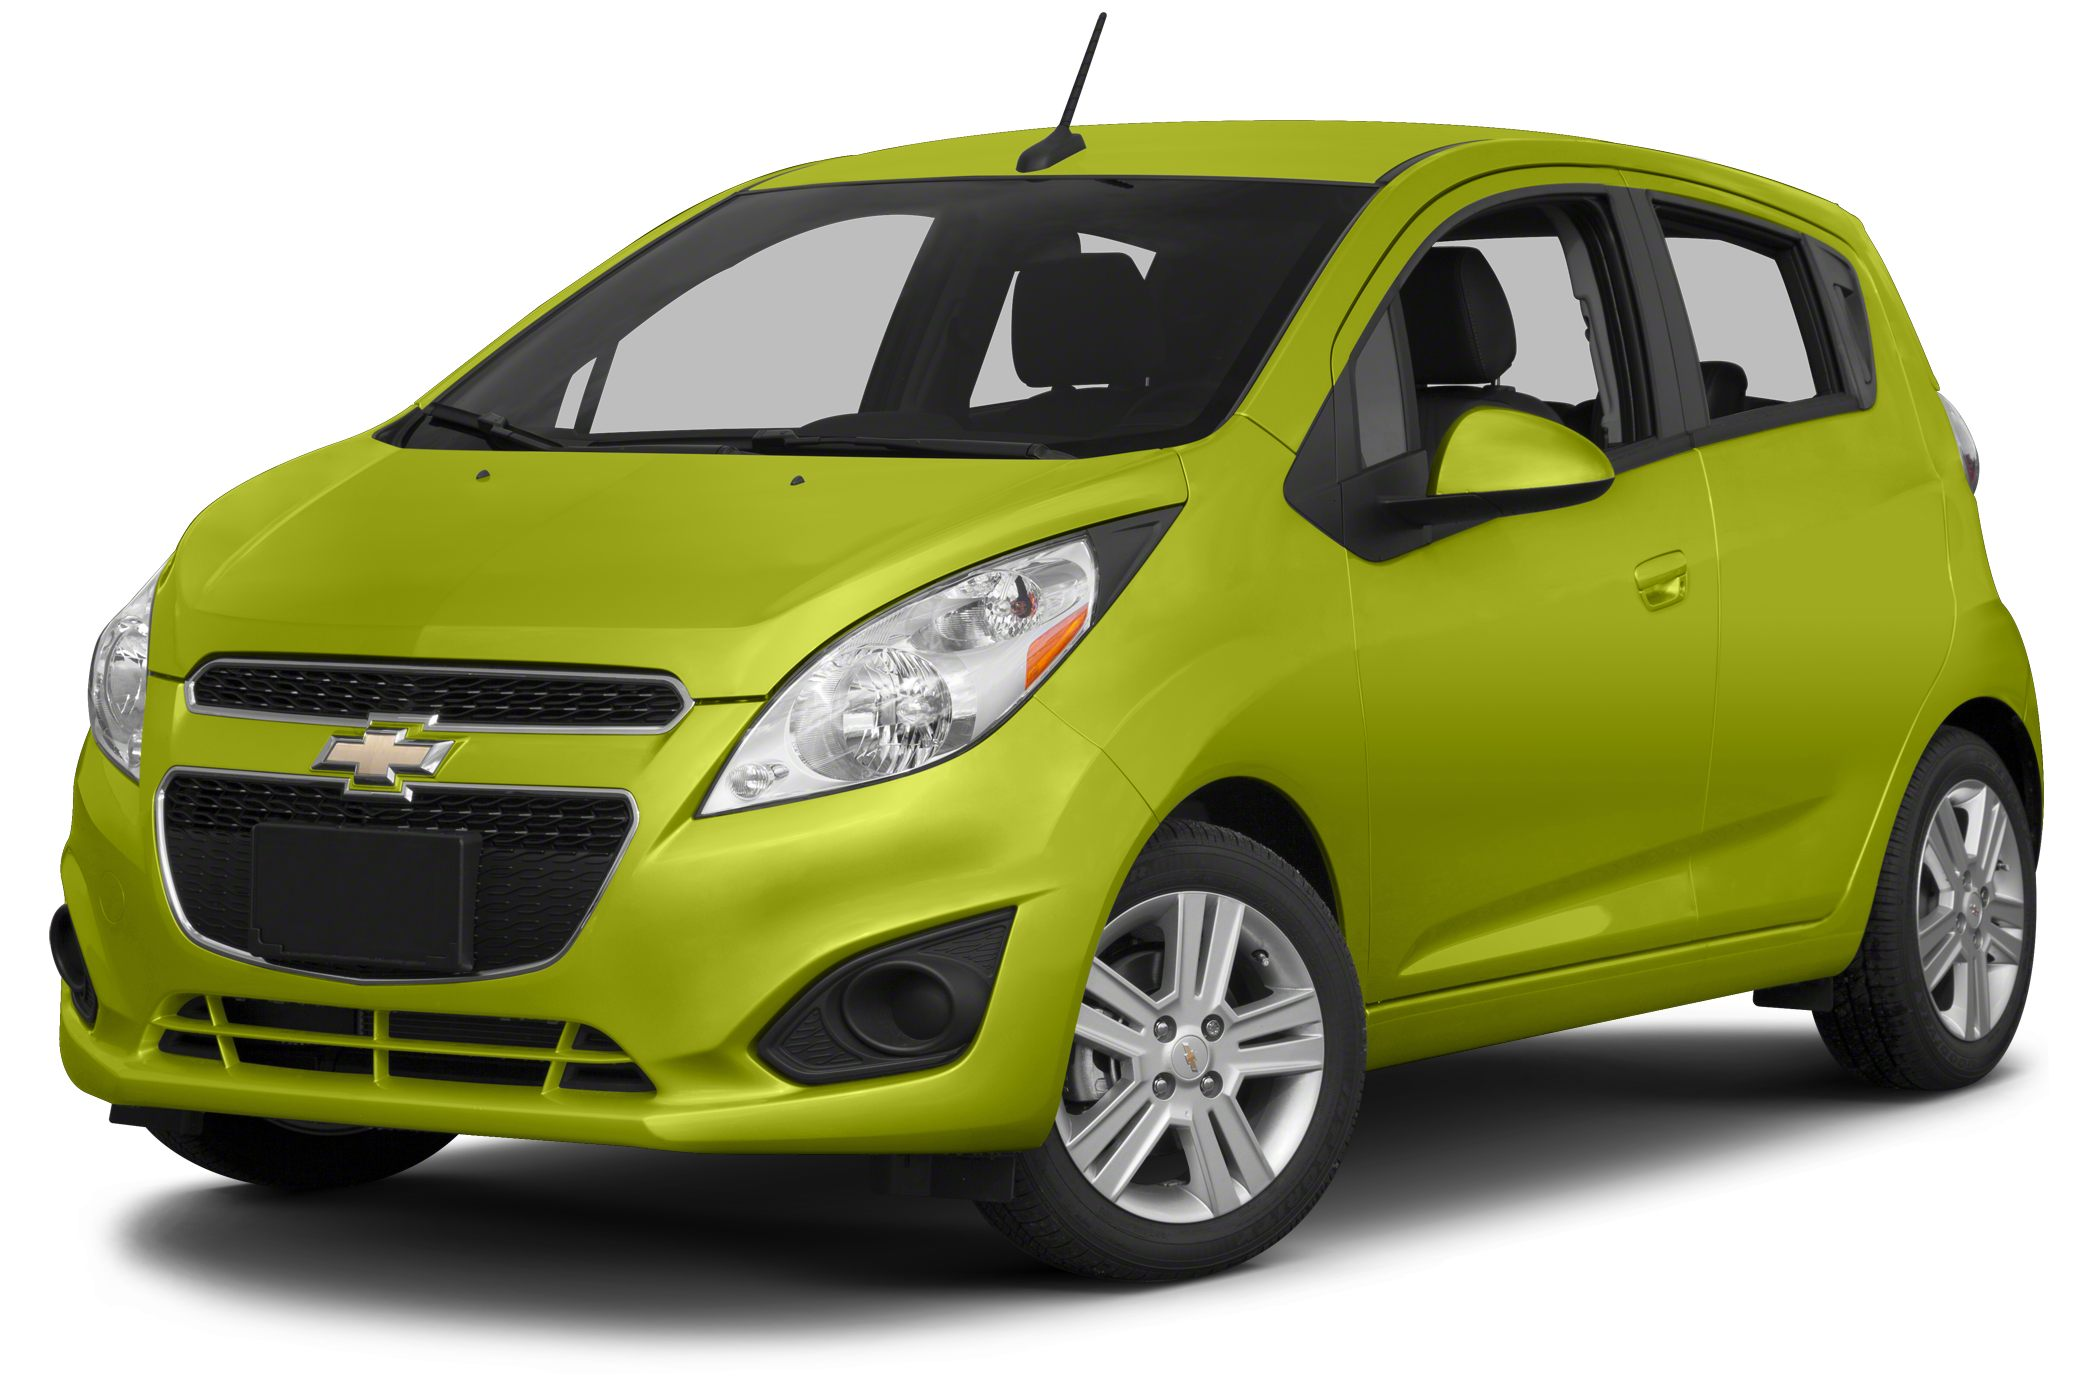 2014 Chevrolet Spark 1LT Introducing the 2014 Chevrolet Spark The safety you need and the feature